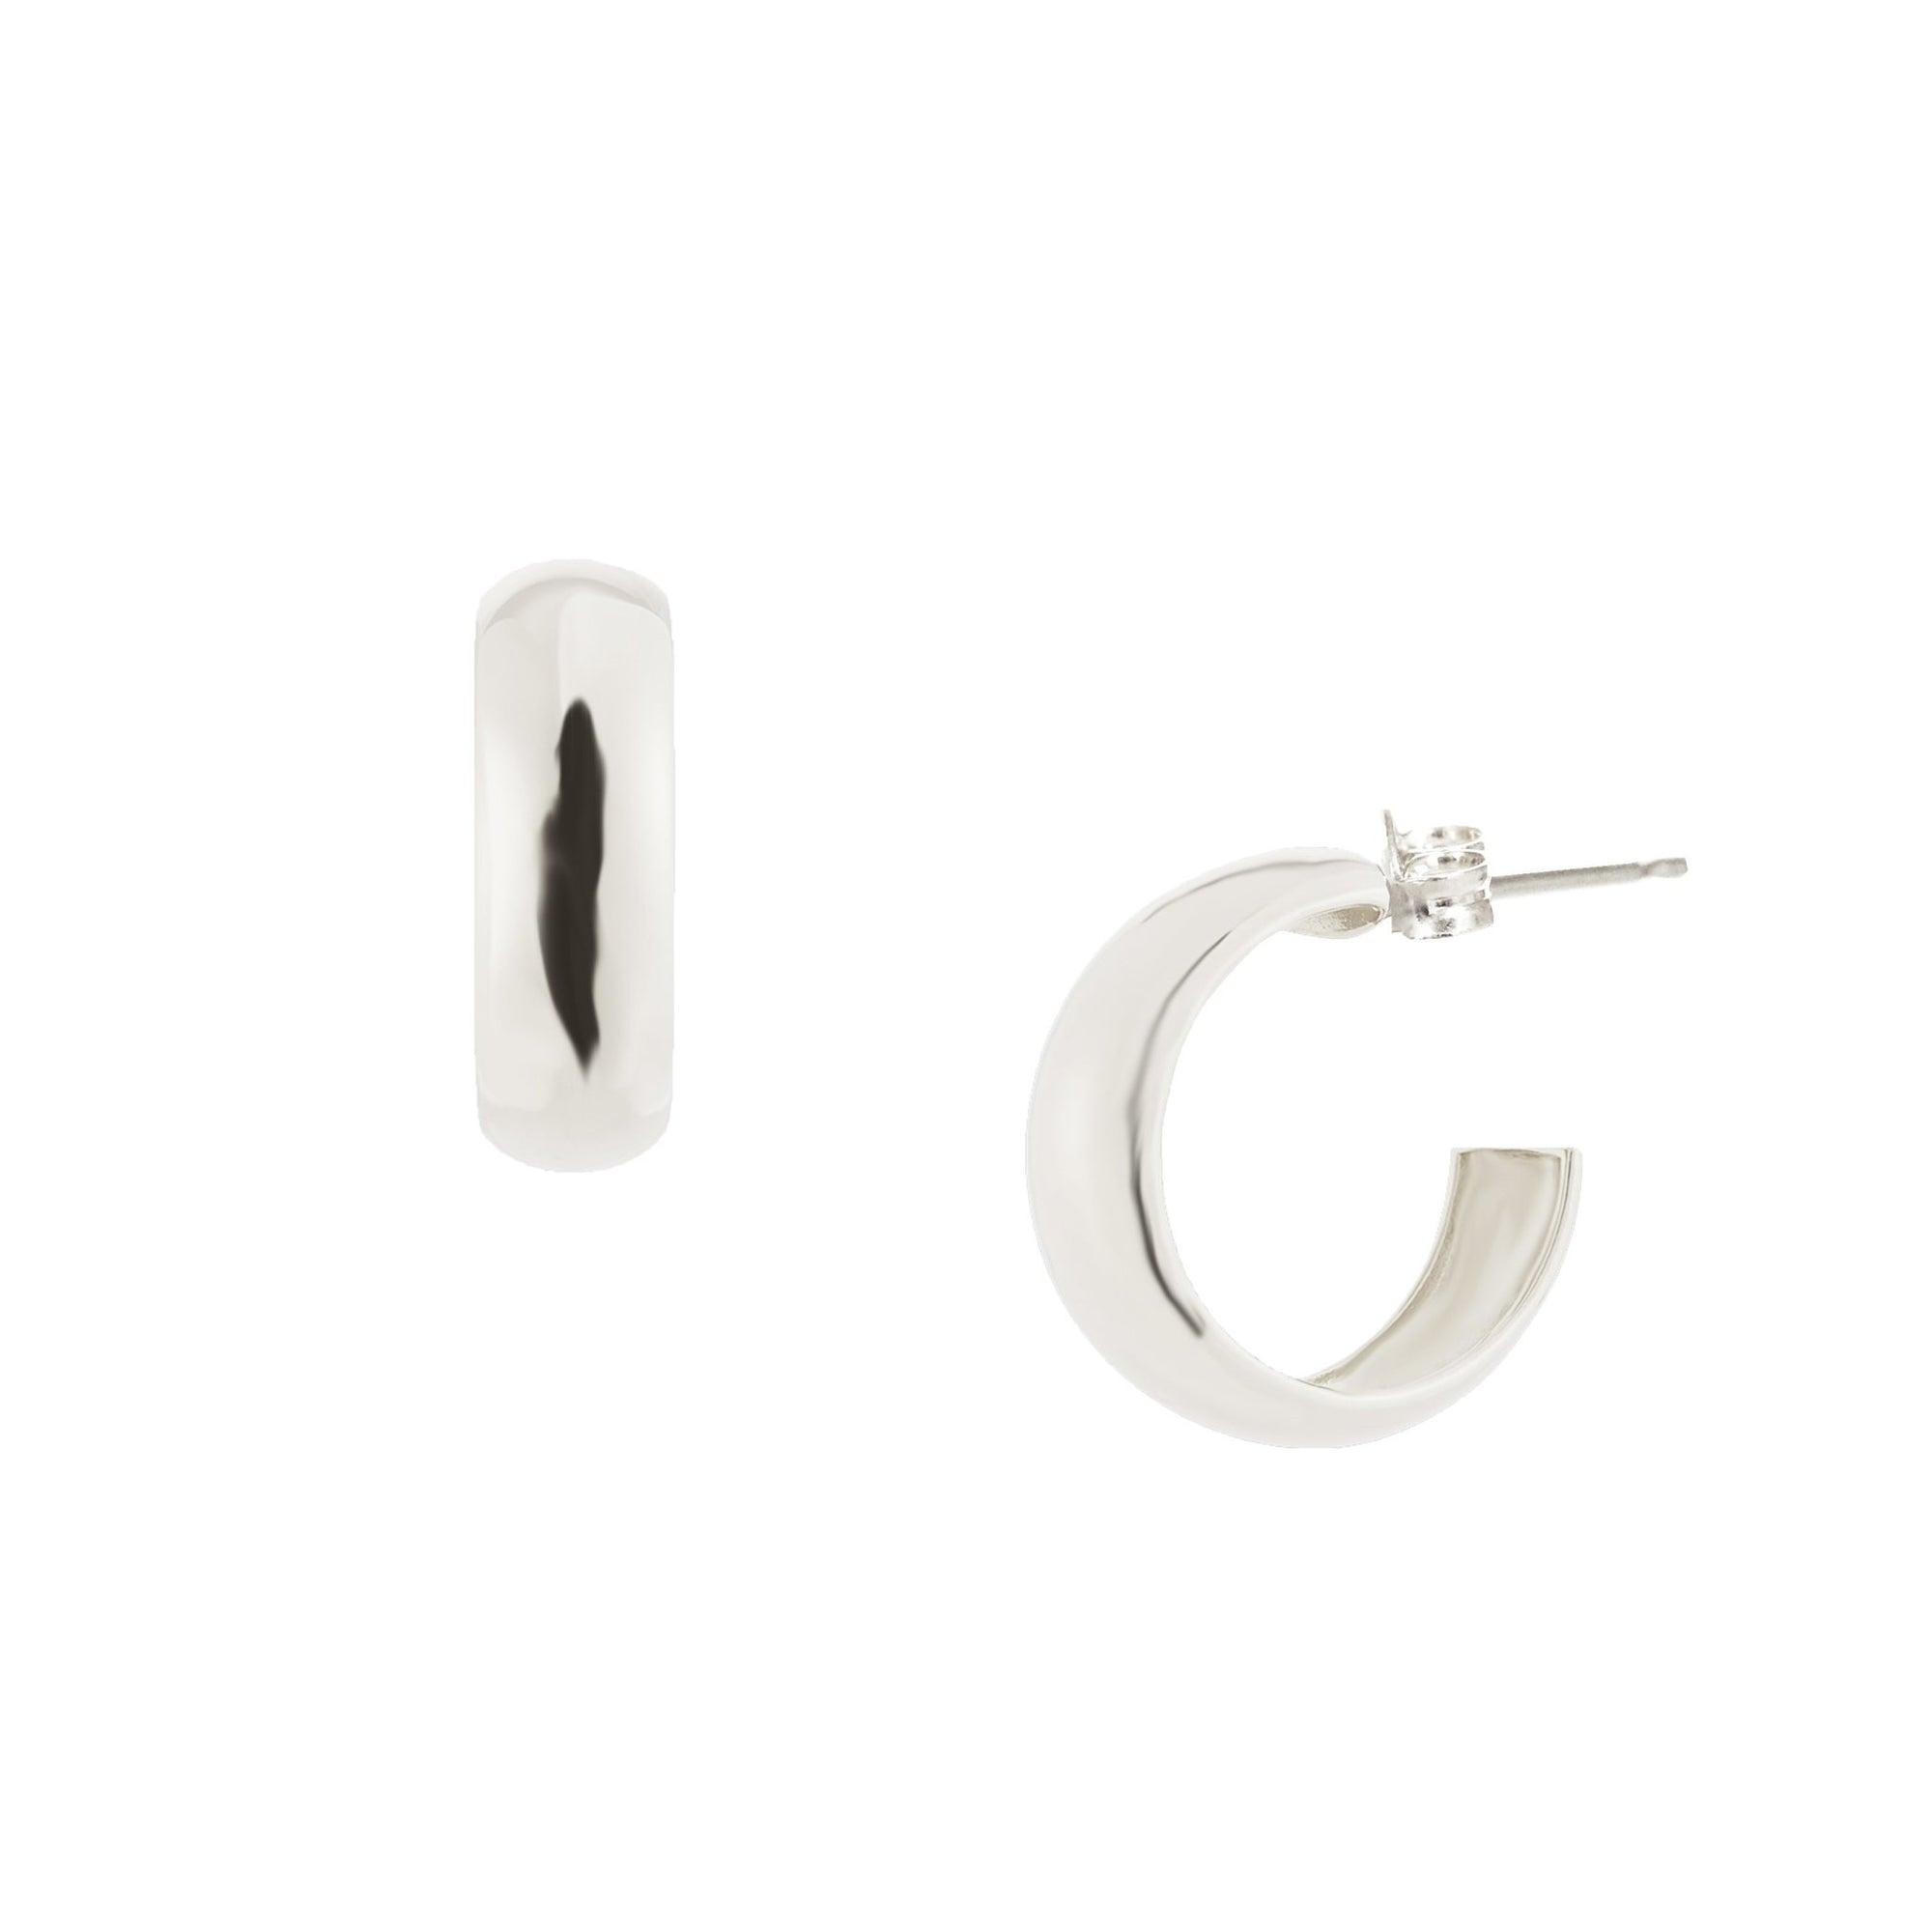 POISE HUGGIE HOOPS - SILVER - SO PRETTY CARA COTTER